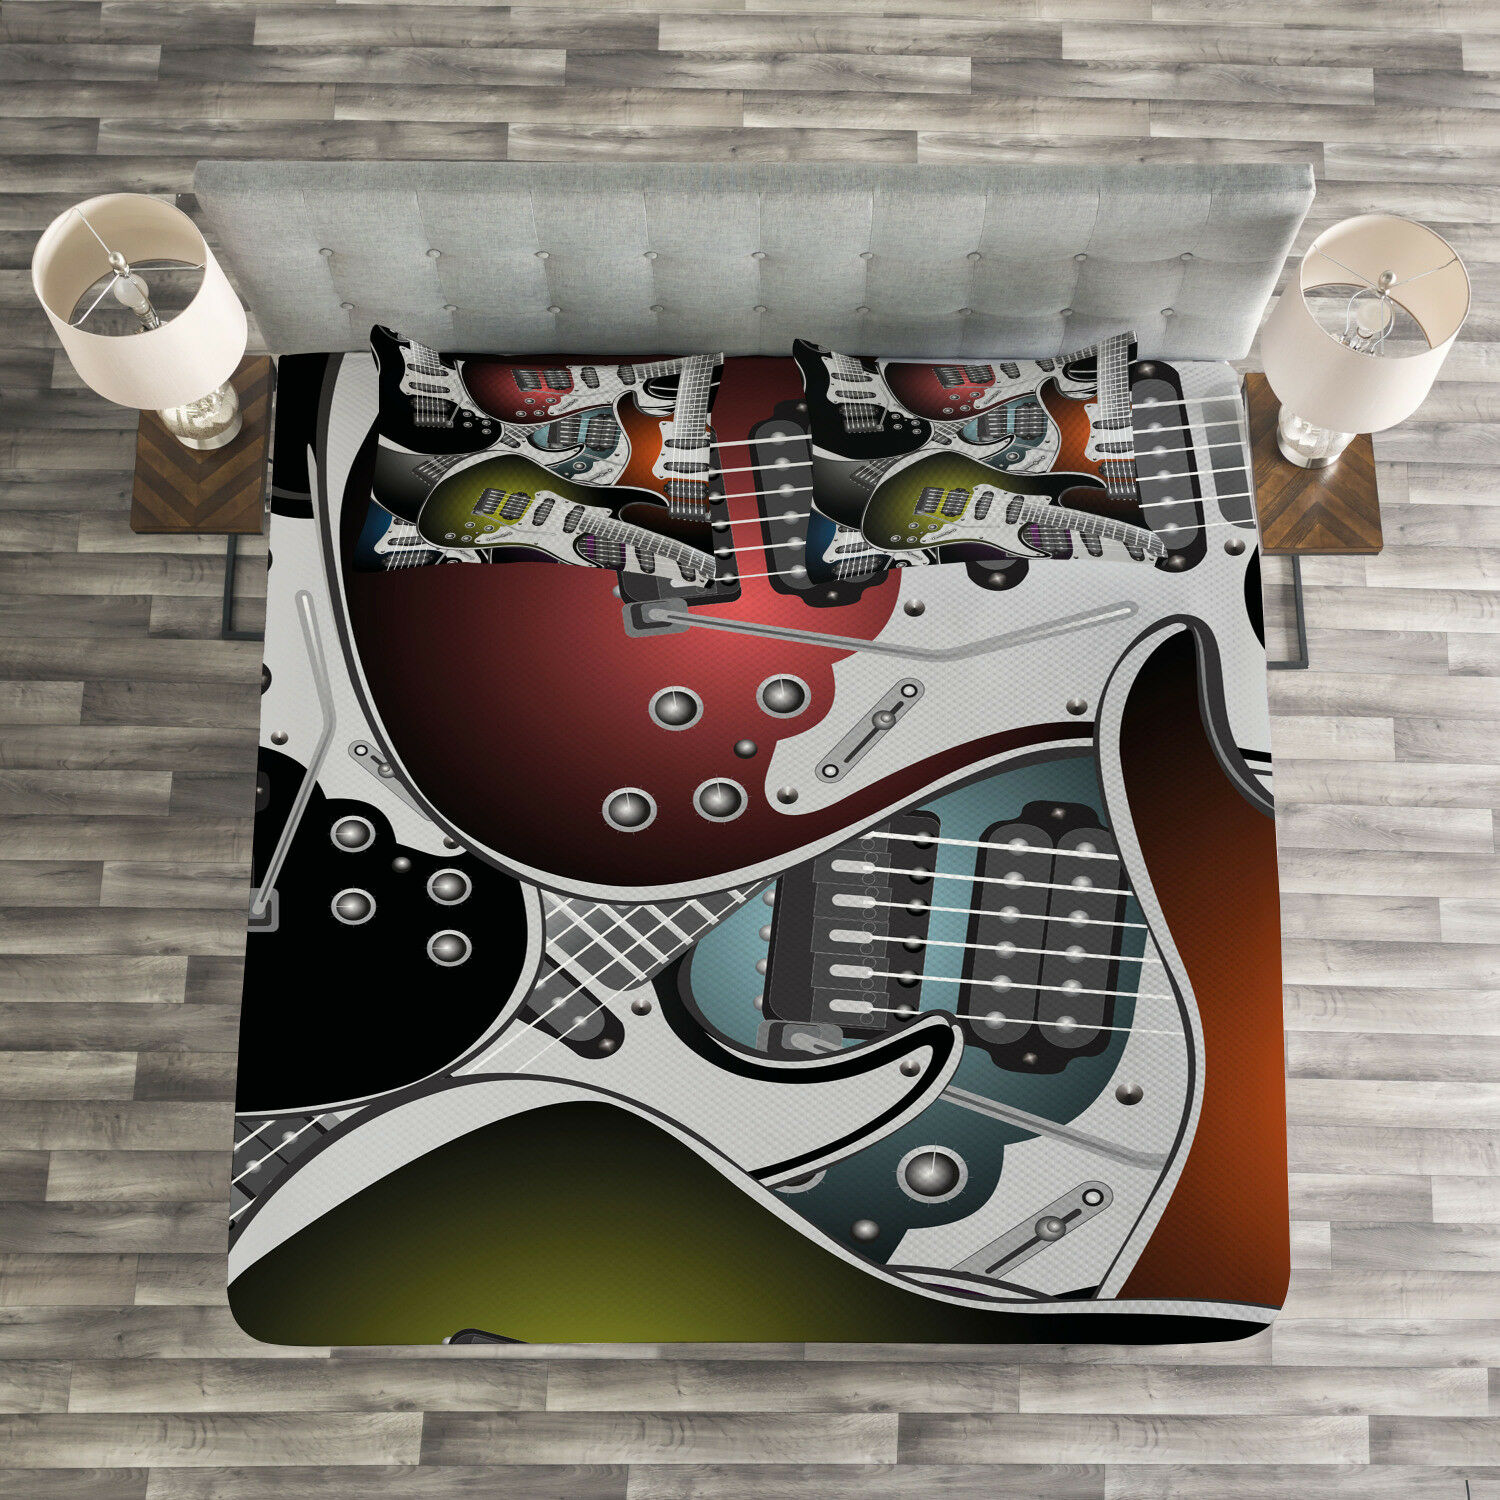 Popstar Party Quilted Bedspread & Pillow Shams Set, Farbeful Guitars Print